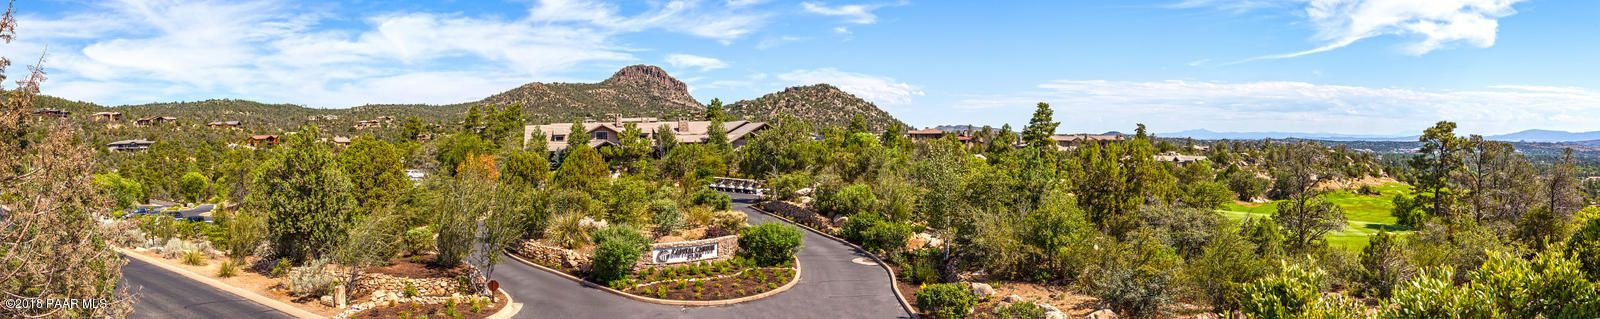 753 Crosscreek Drive Prescott, AZ 86303 - MLS #: 1012687